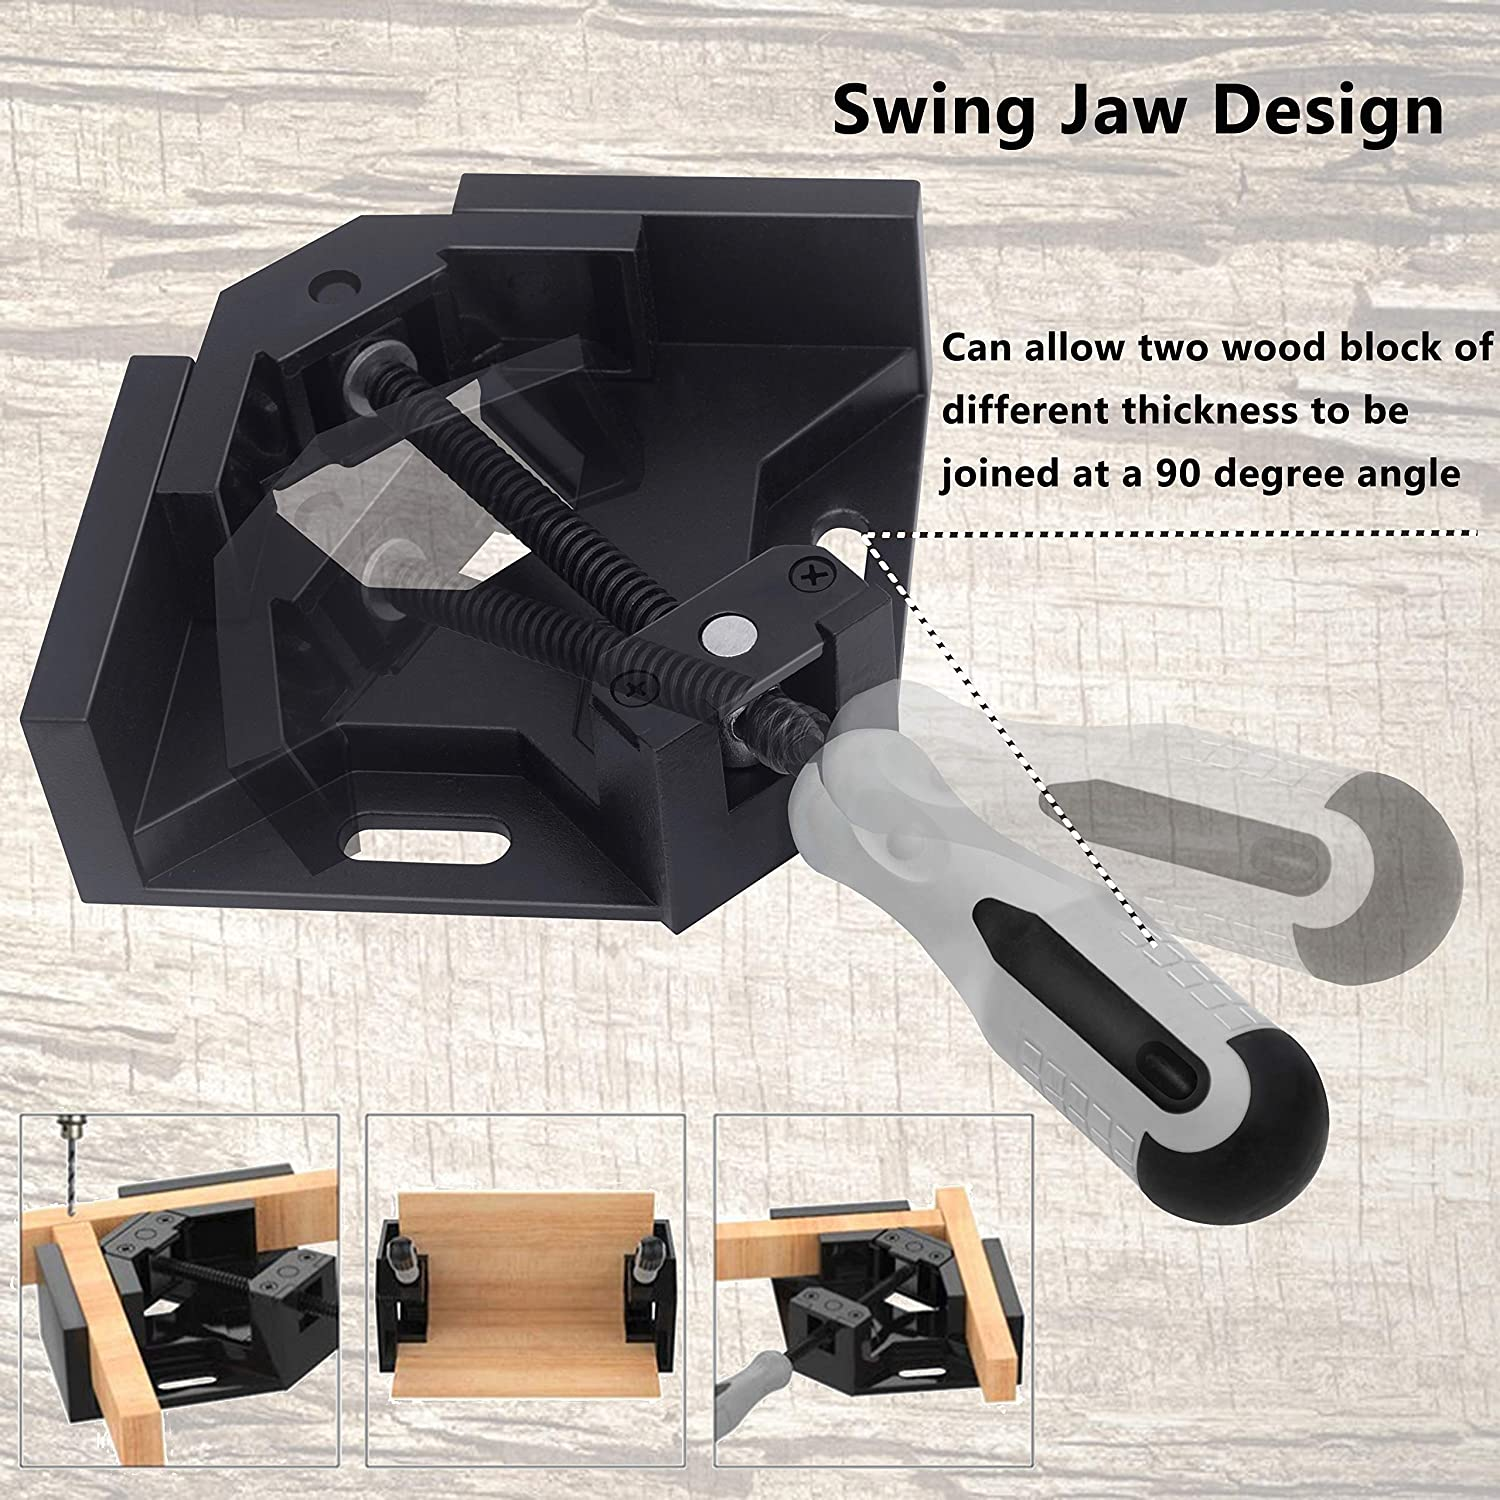 Black 90 Degree Clamp Vice Grip Woodworking Quick Fixture Tool TAIWAIN Right Angle Corner Welding Clamp 2pcs Aluminum Alloy Corner Clamps Holder Adjustable Swing Jaw Corner Clamp